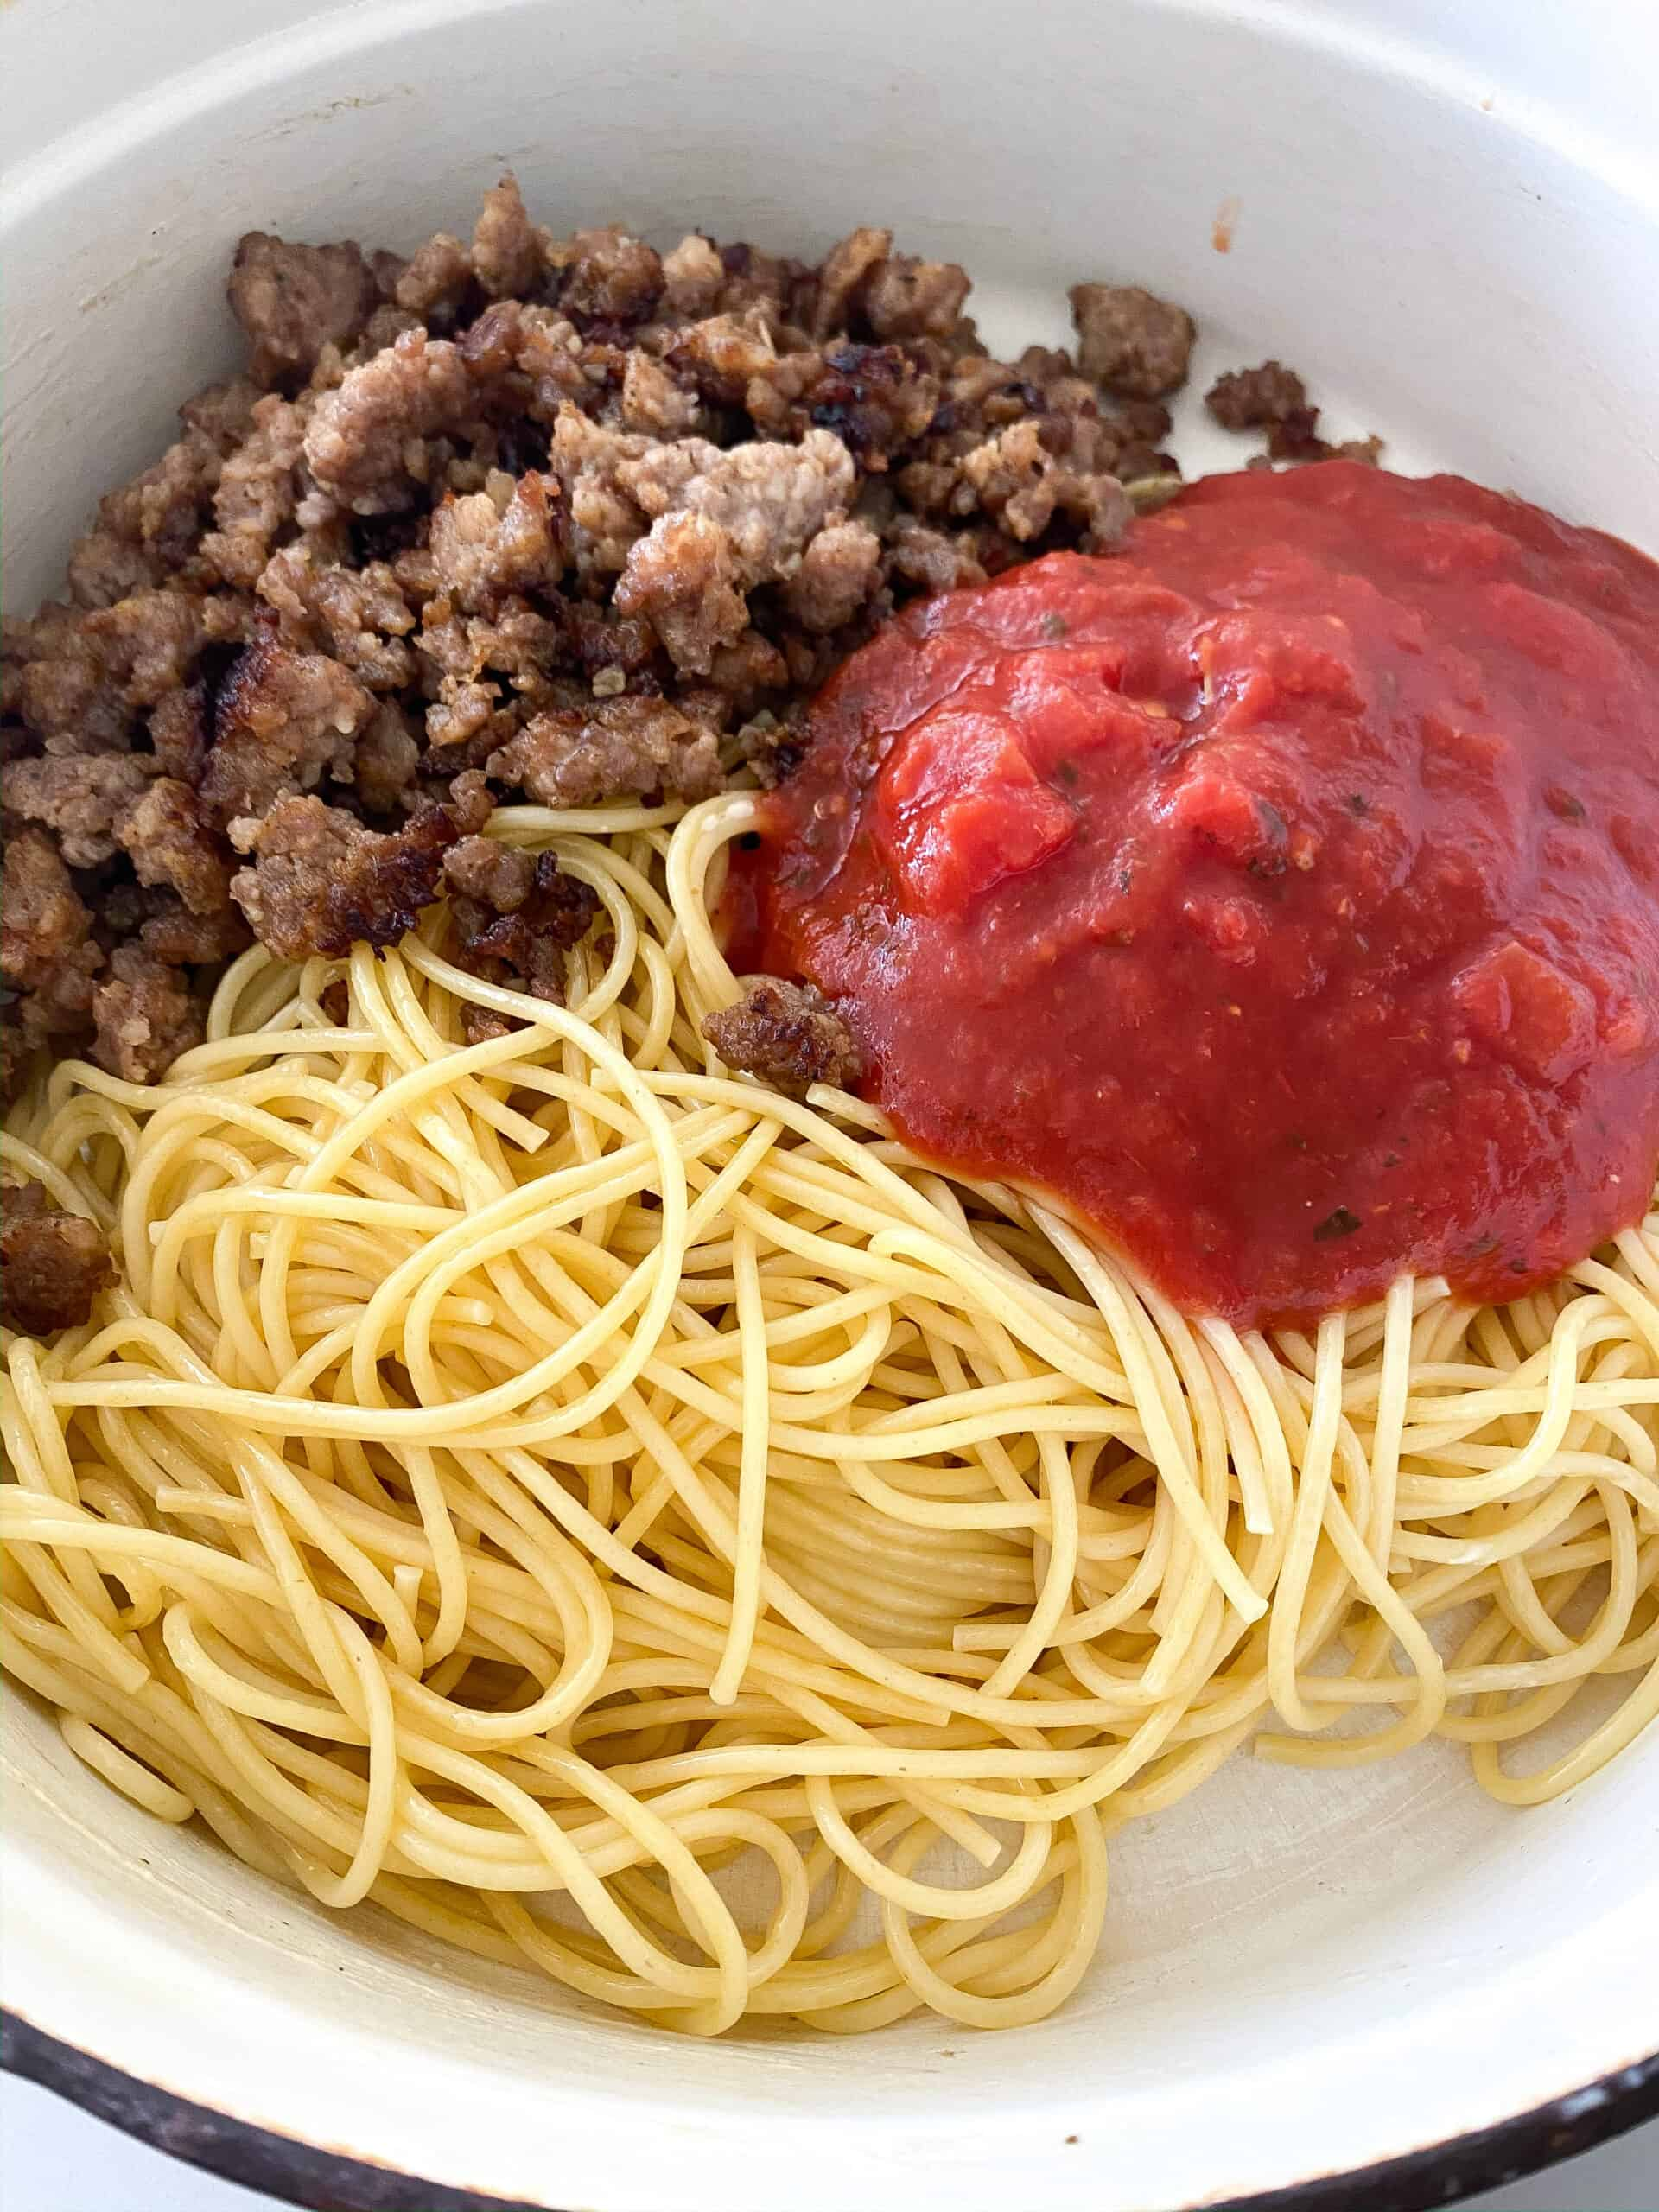 red sauce over browned sausage in bowl